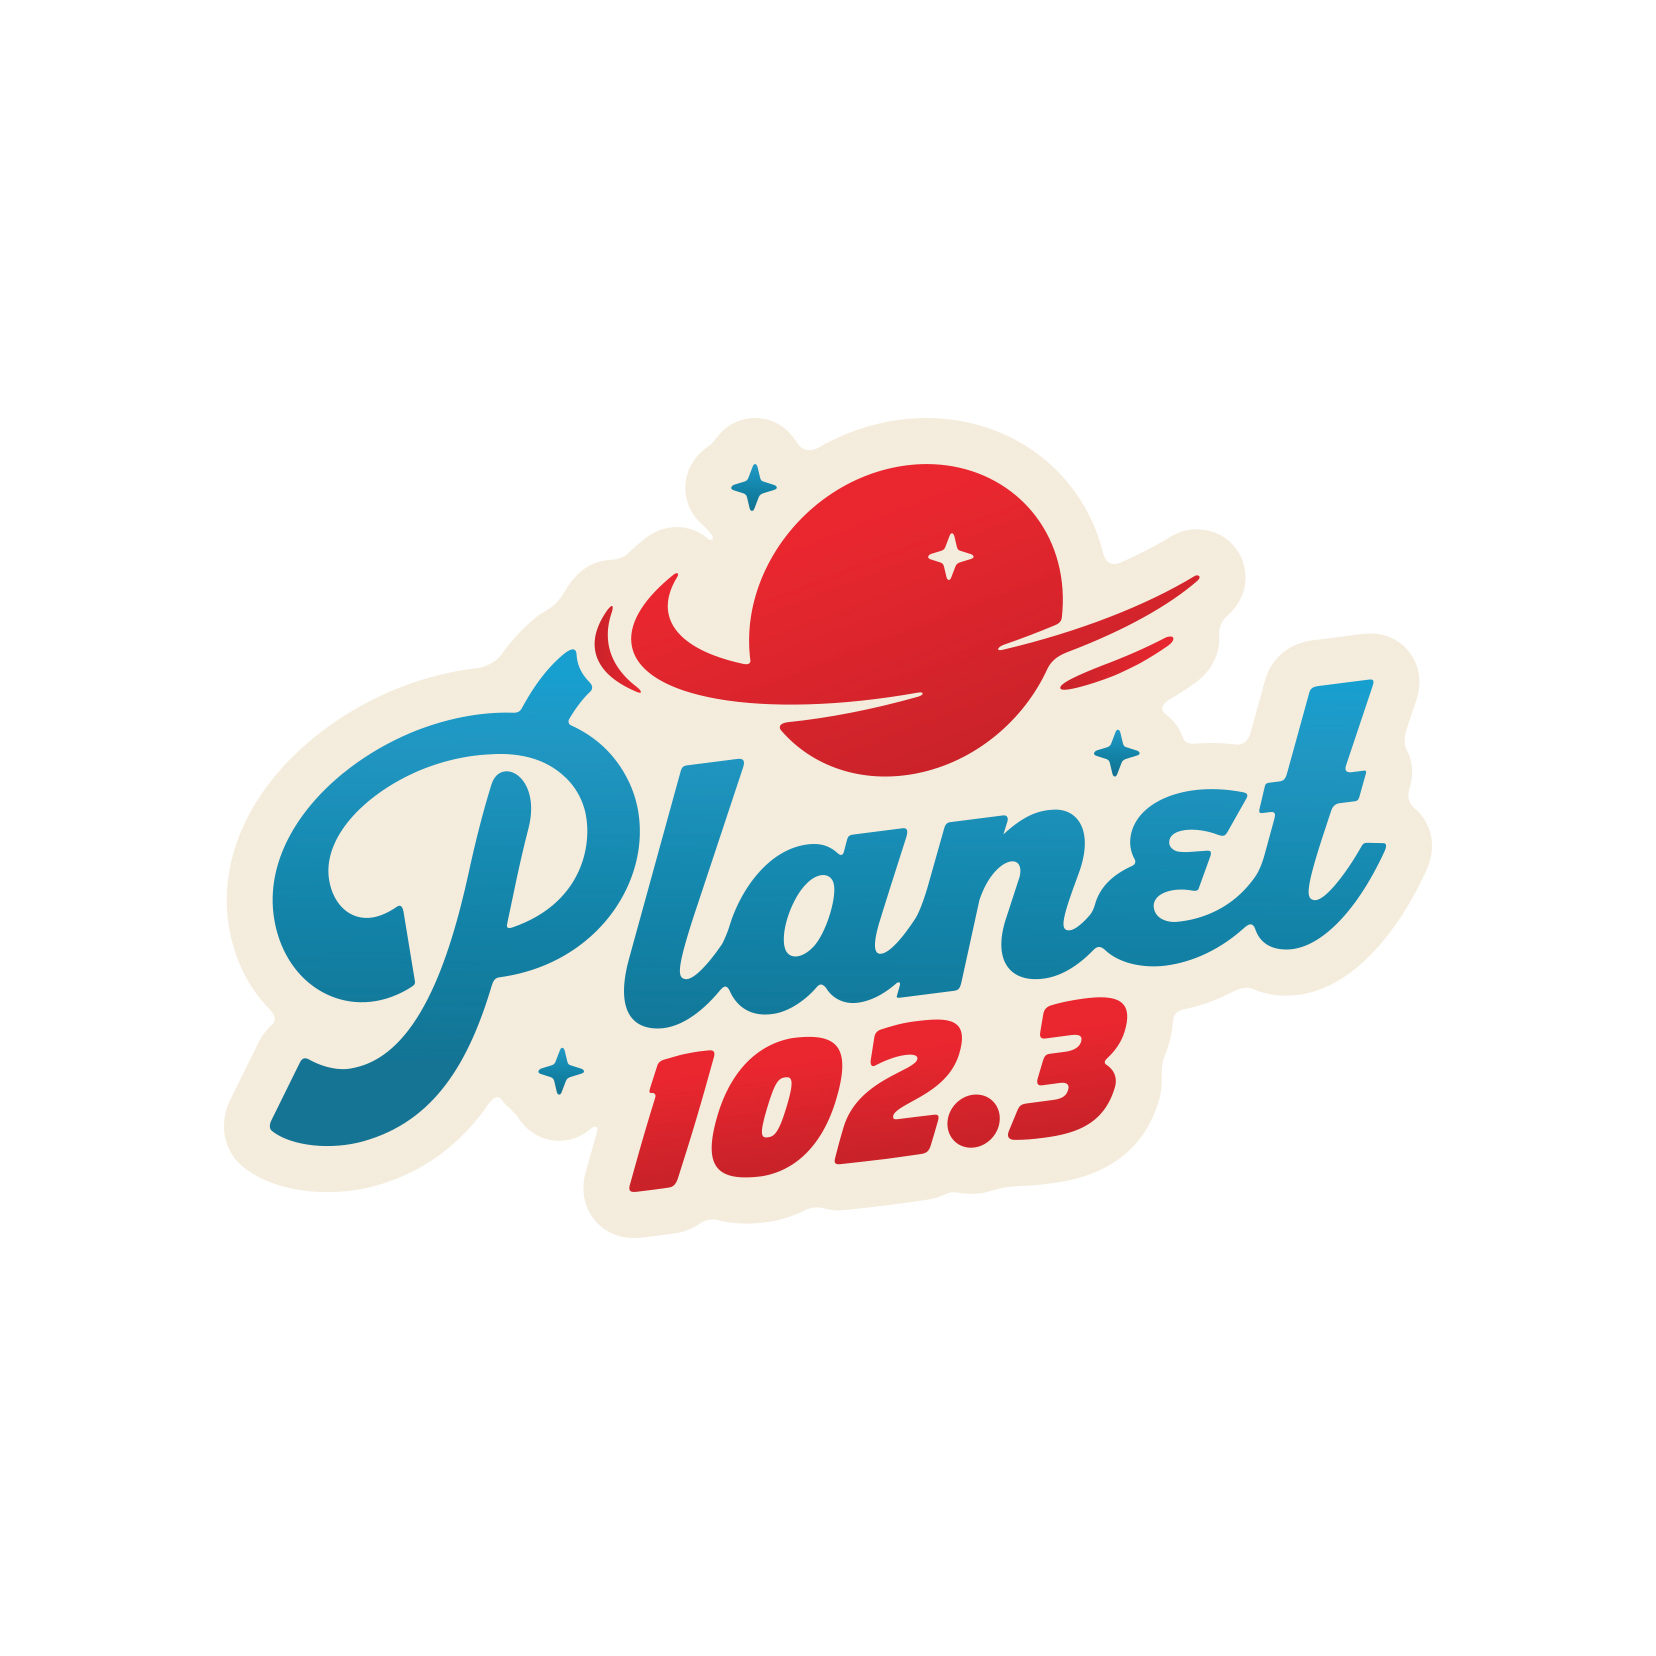 Planet 102.3 logo design (unused)